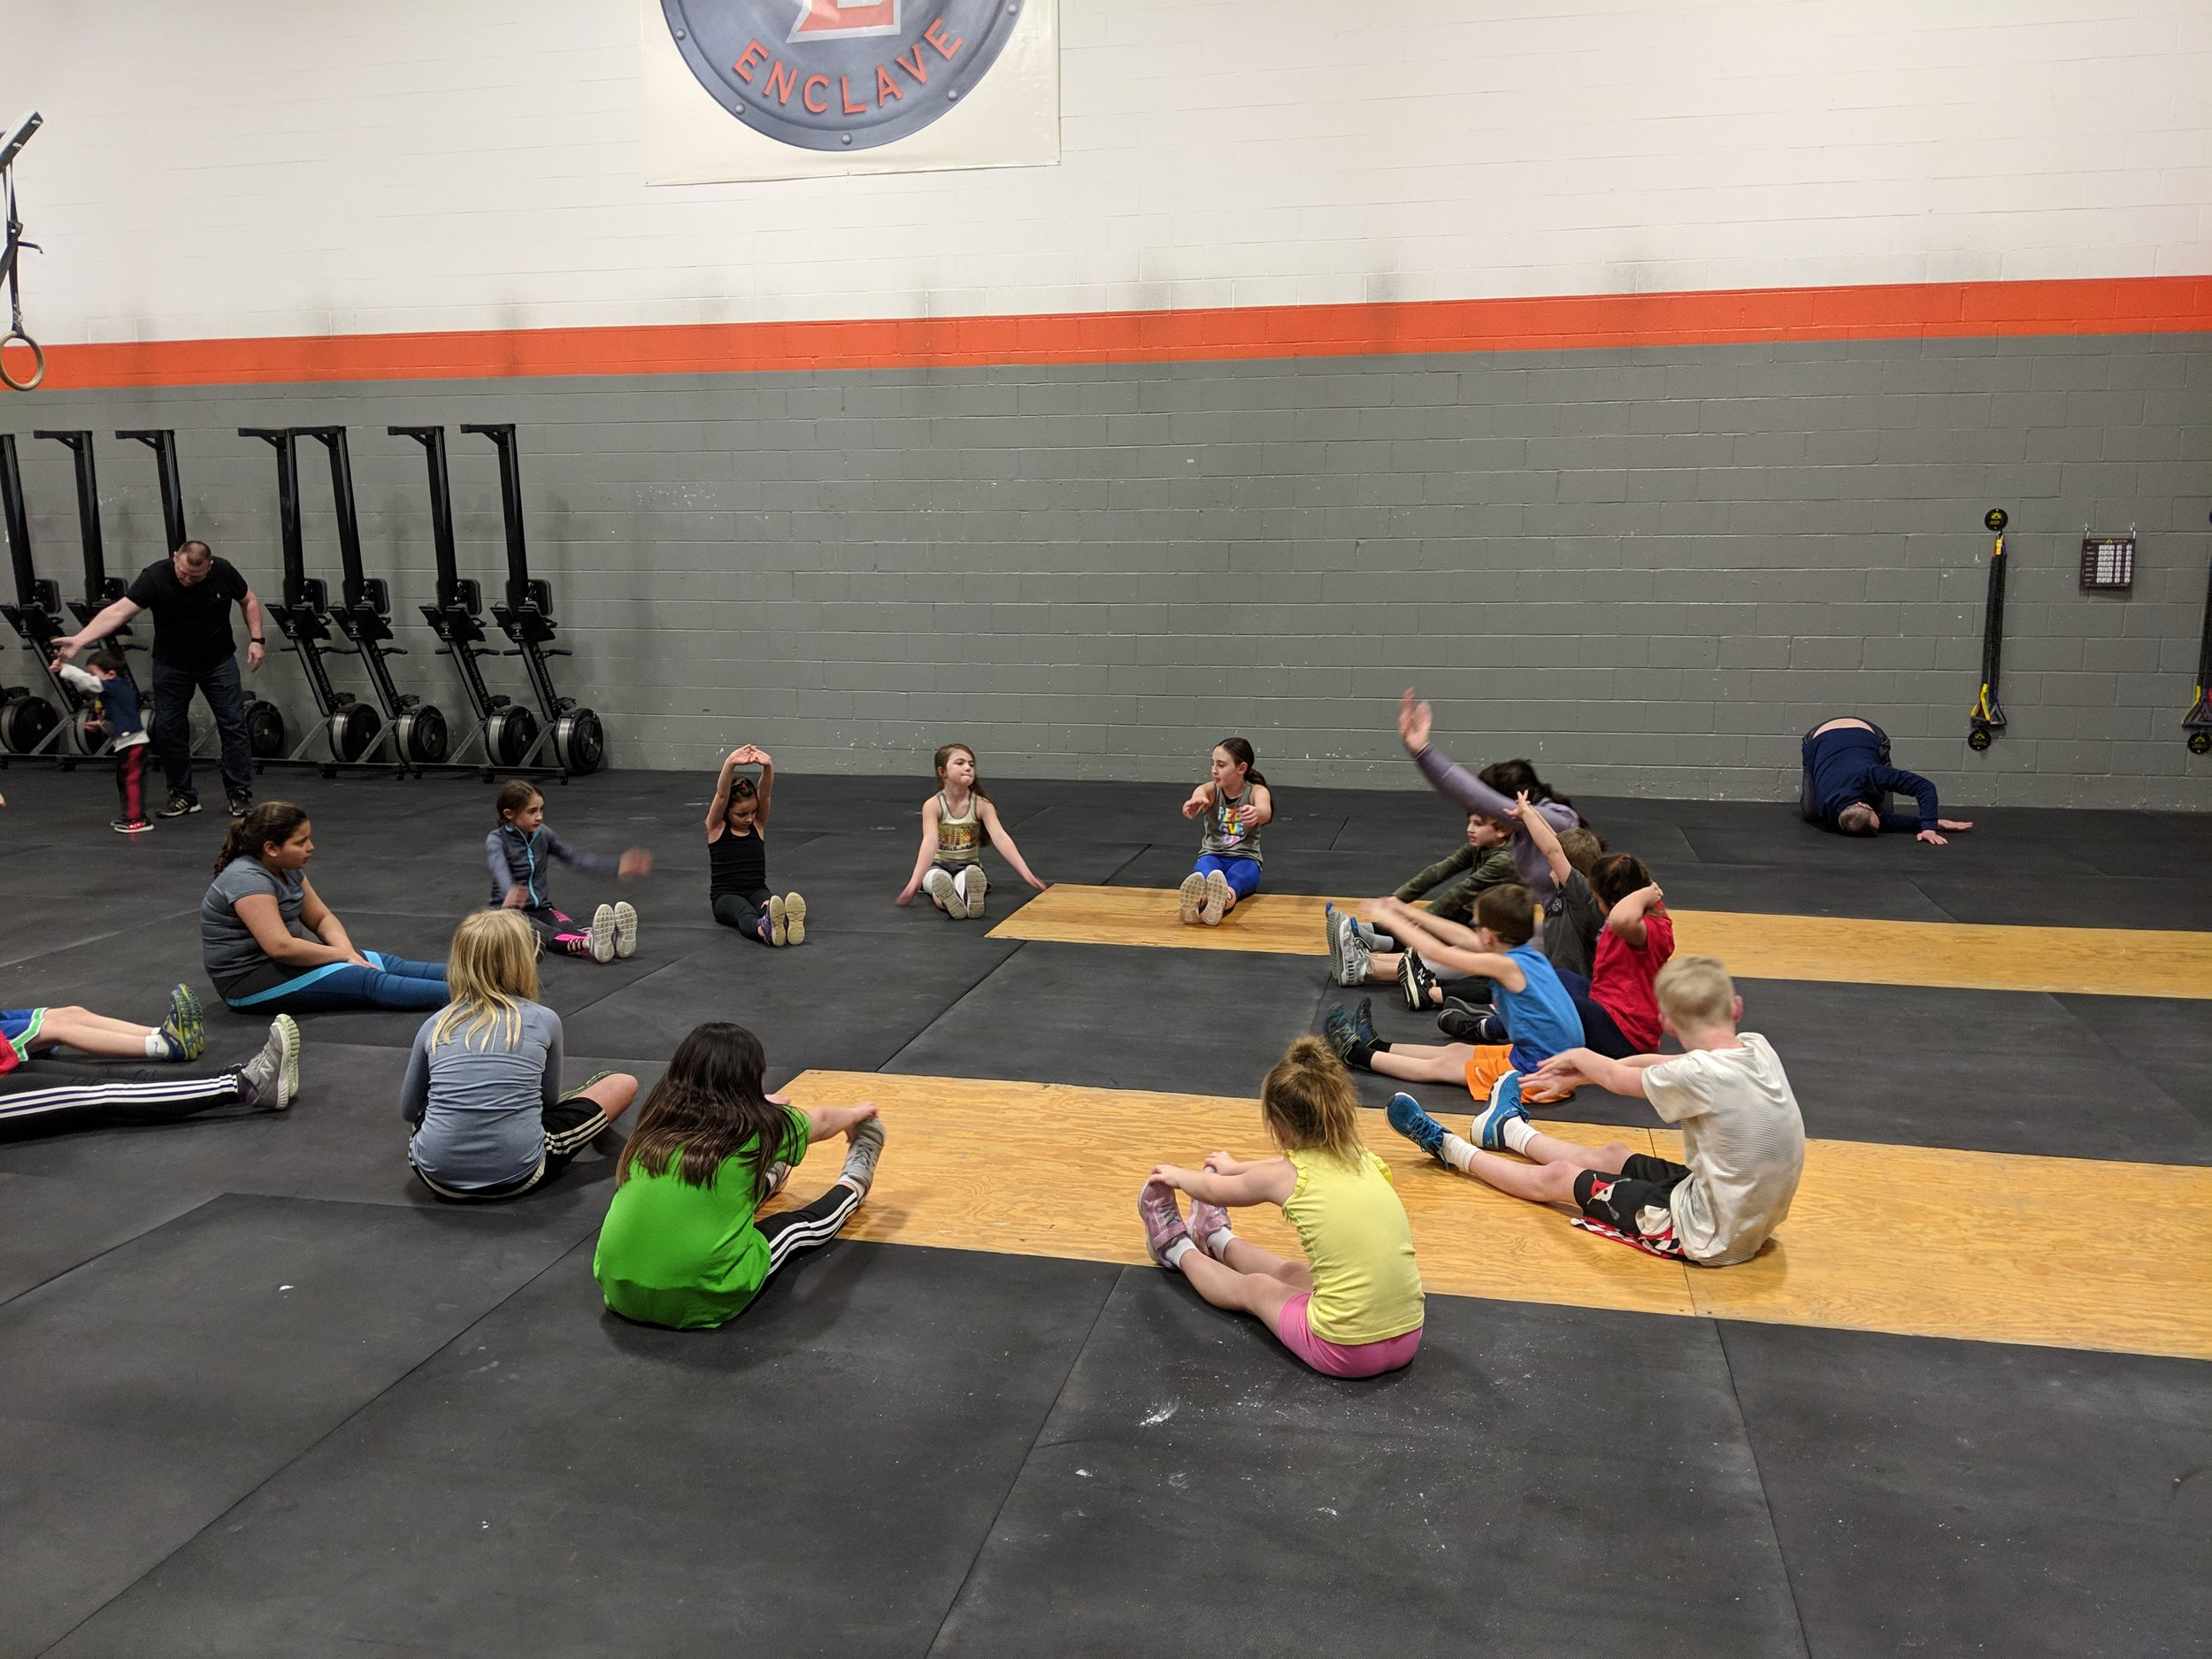 Practicing mobility during kids class